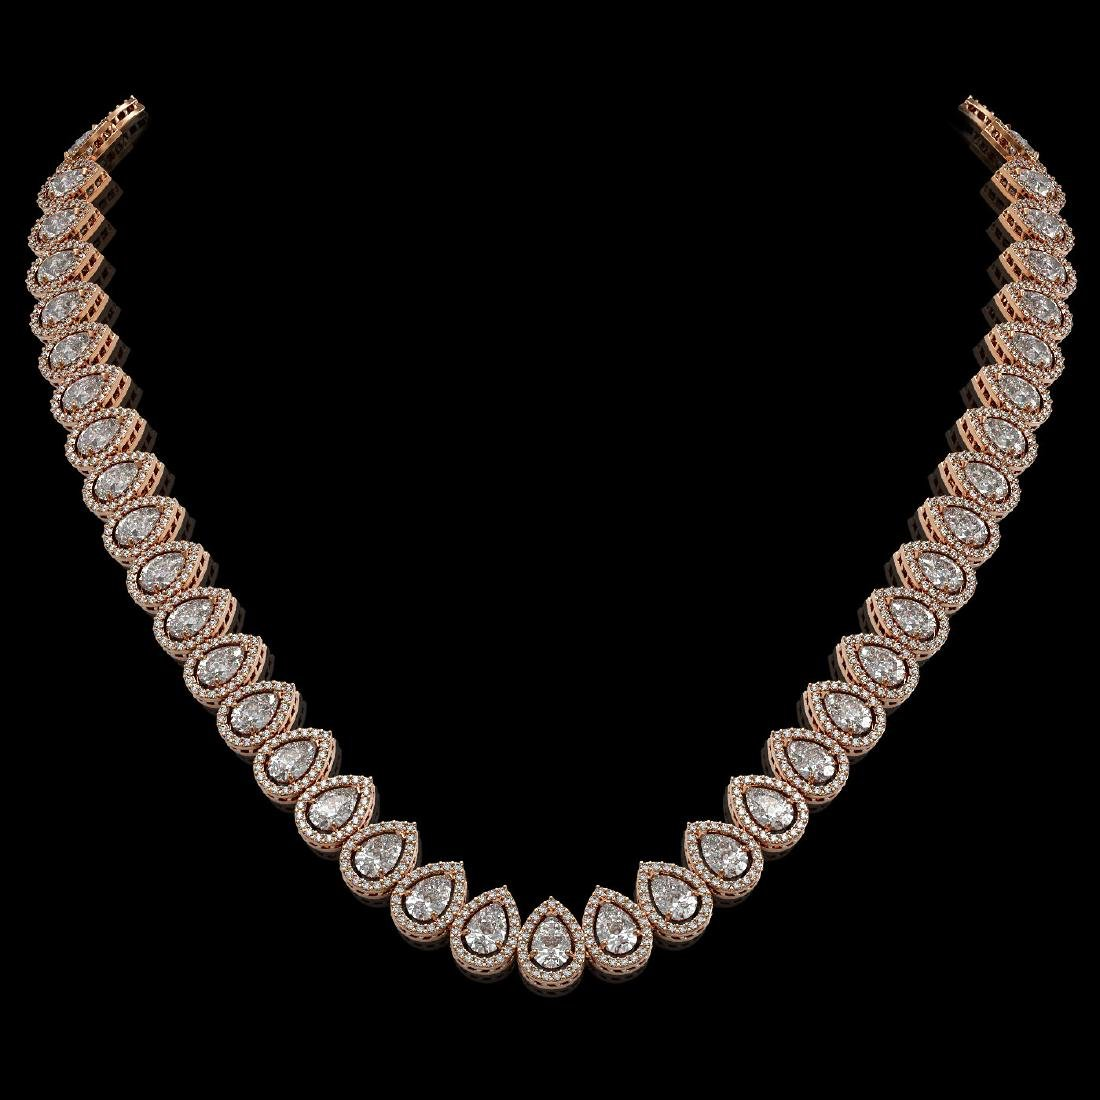 34.83 CTW Pear Diamond Designer Necklace 18K Rose Gold